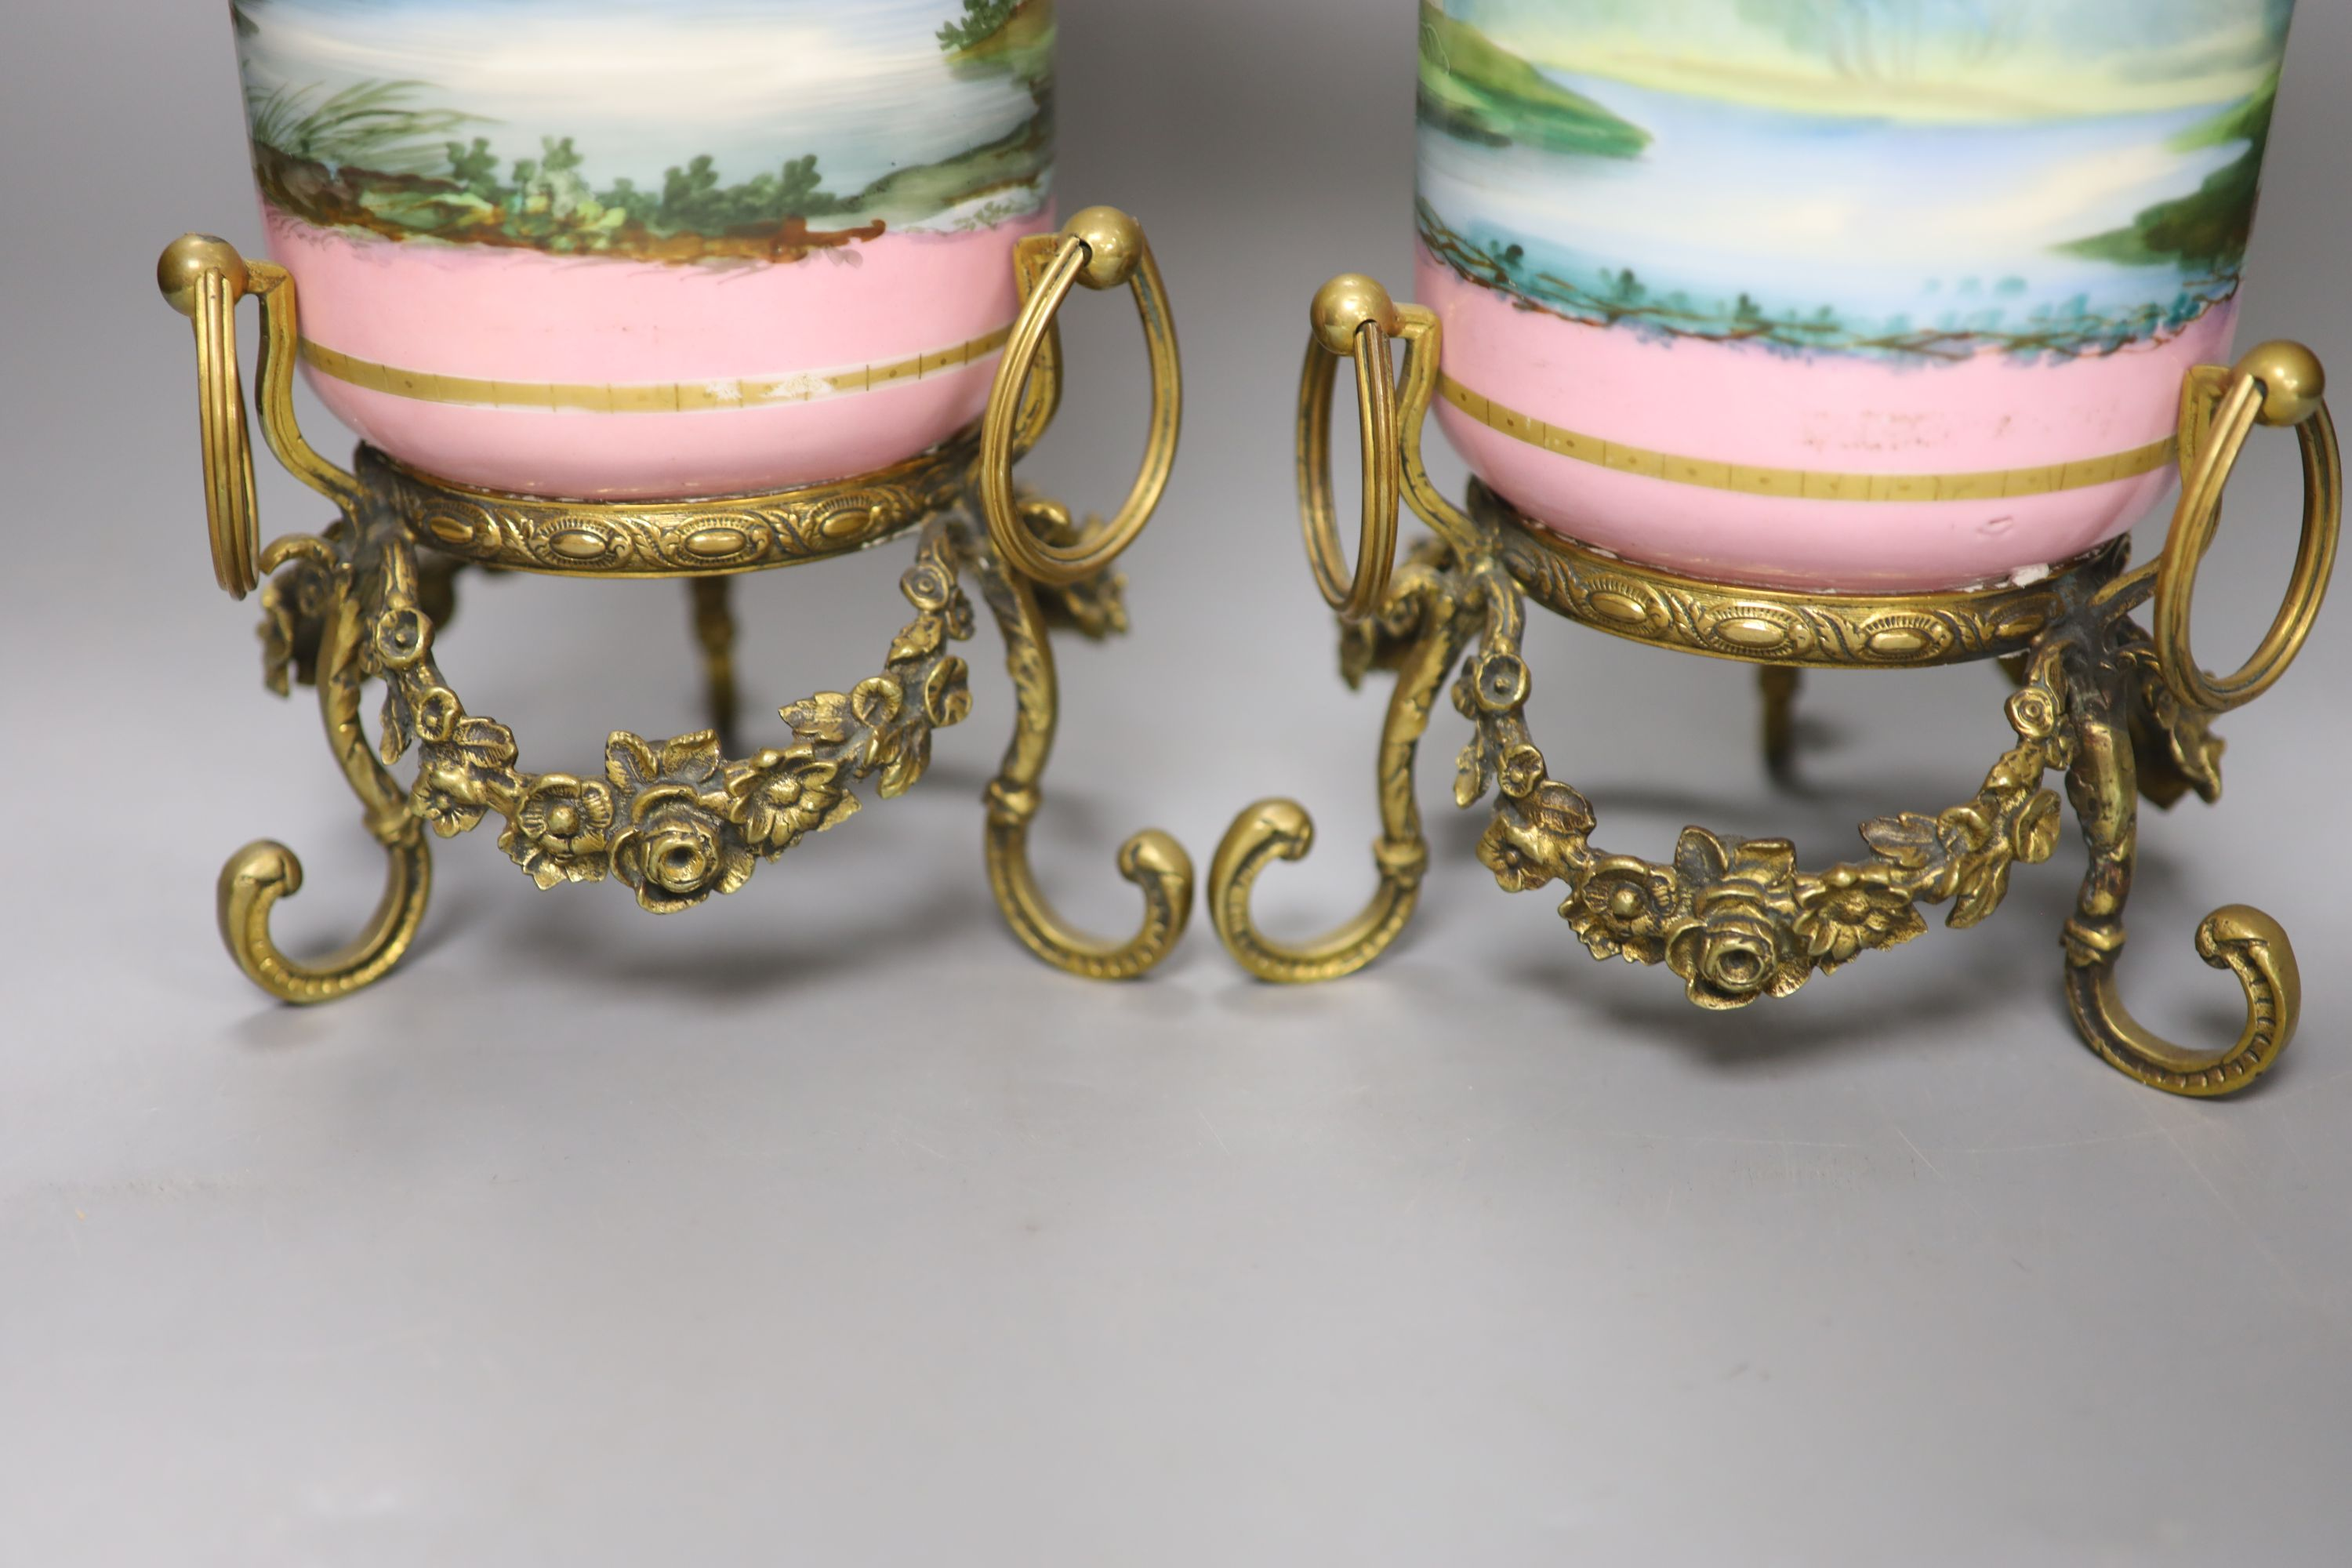 A pair of late 19th century Paris porcelain and gilt metal mounted vases, height 33cmCONDITION: Good - Image 3 of 4